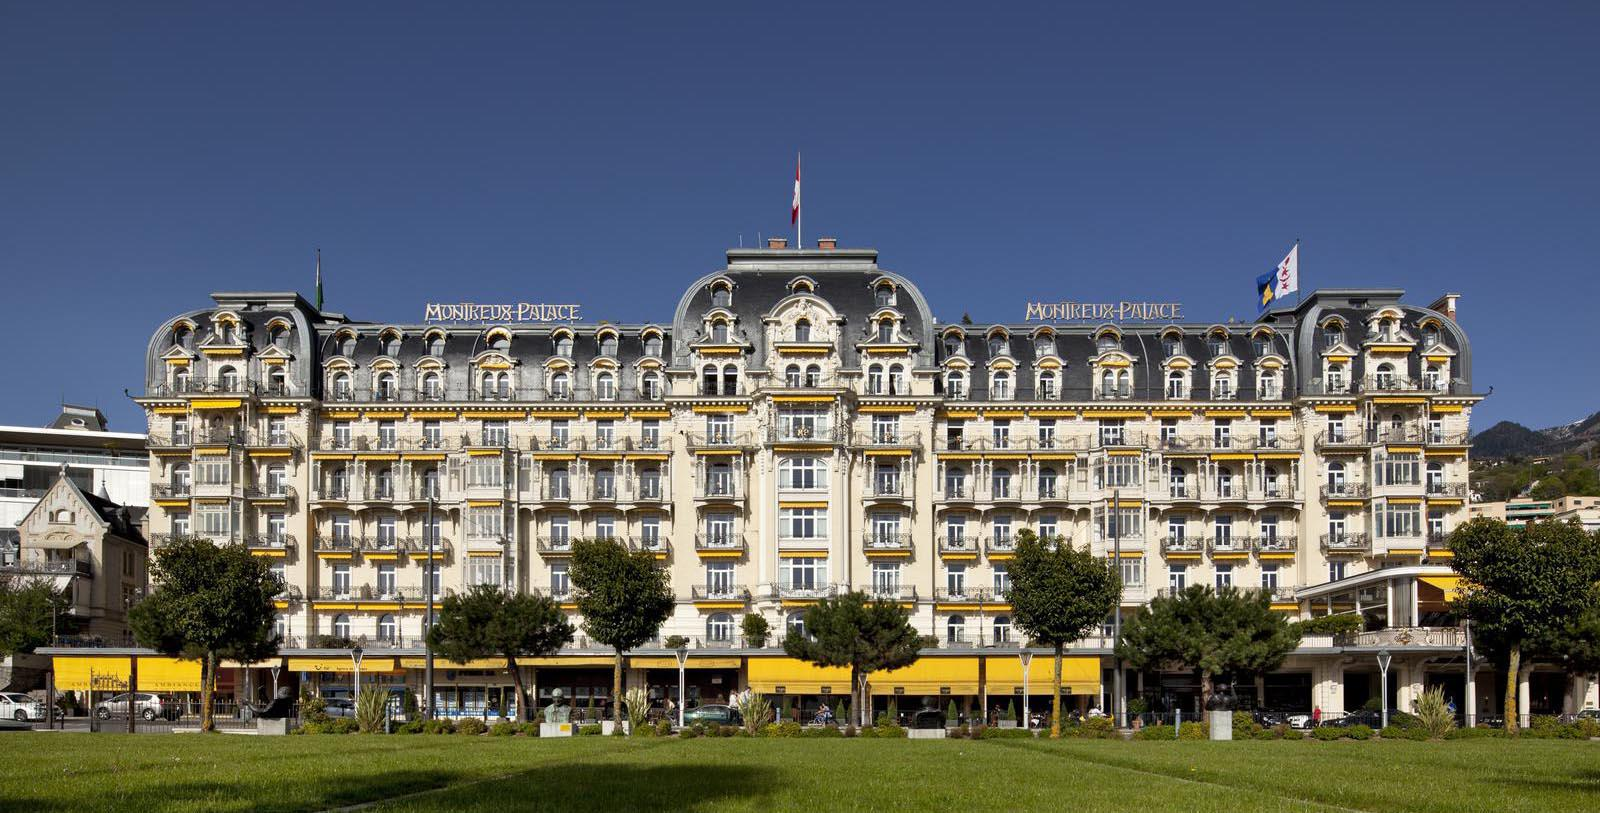 Discover the magnificent Belle Époque architecture of this stunning holiday destination.